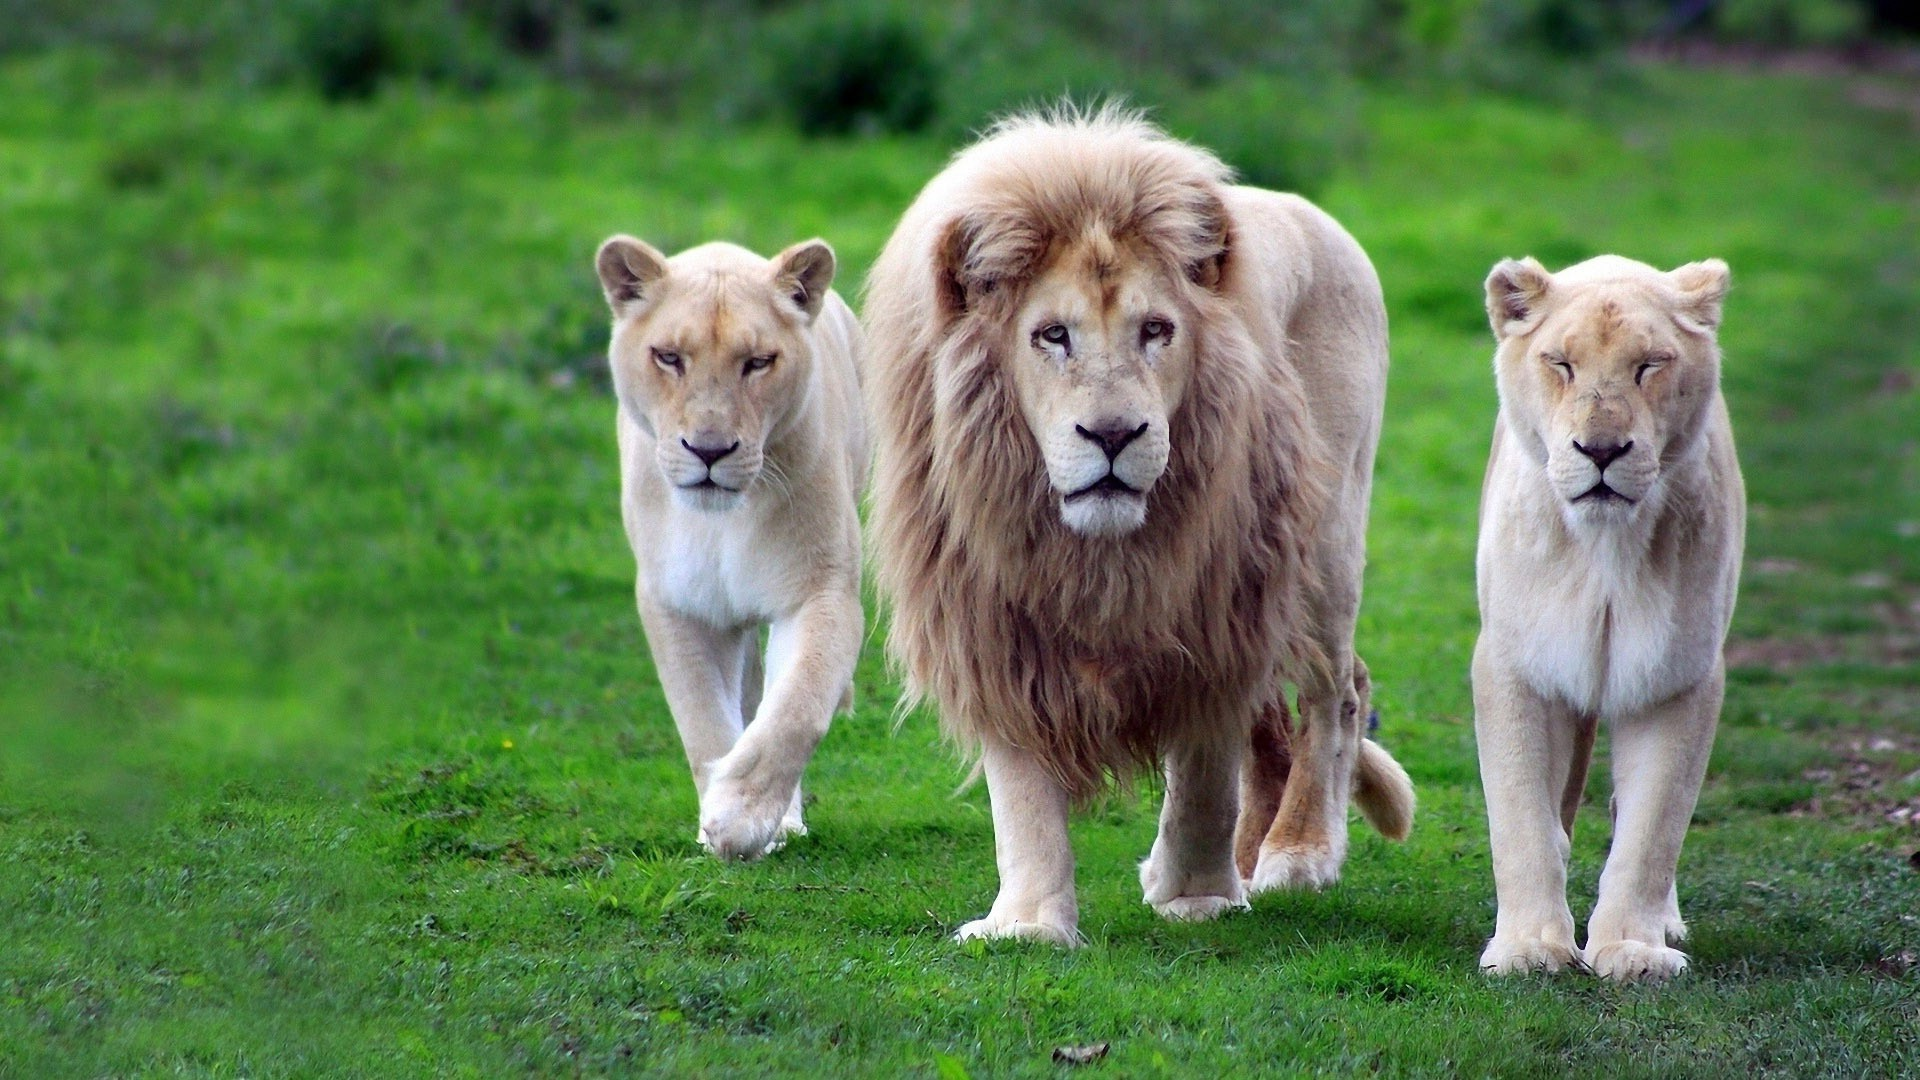 Download Wallpapers Download 2790x2547 Animals Grass: A Pride Of Lions Out Hunting. Android Wallpapers For Free